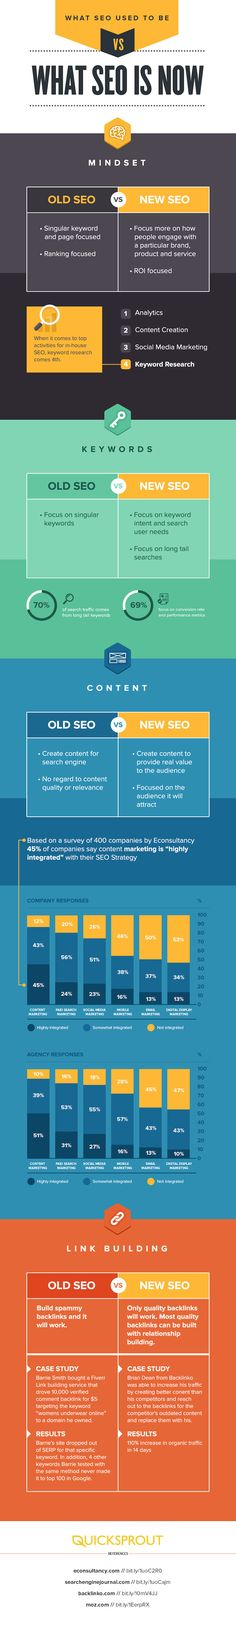 What SEO Used to Be Vs What SEO Is Now #infographic #SEO